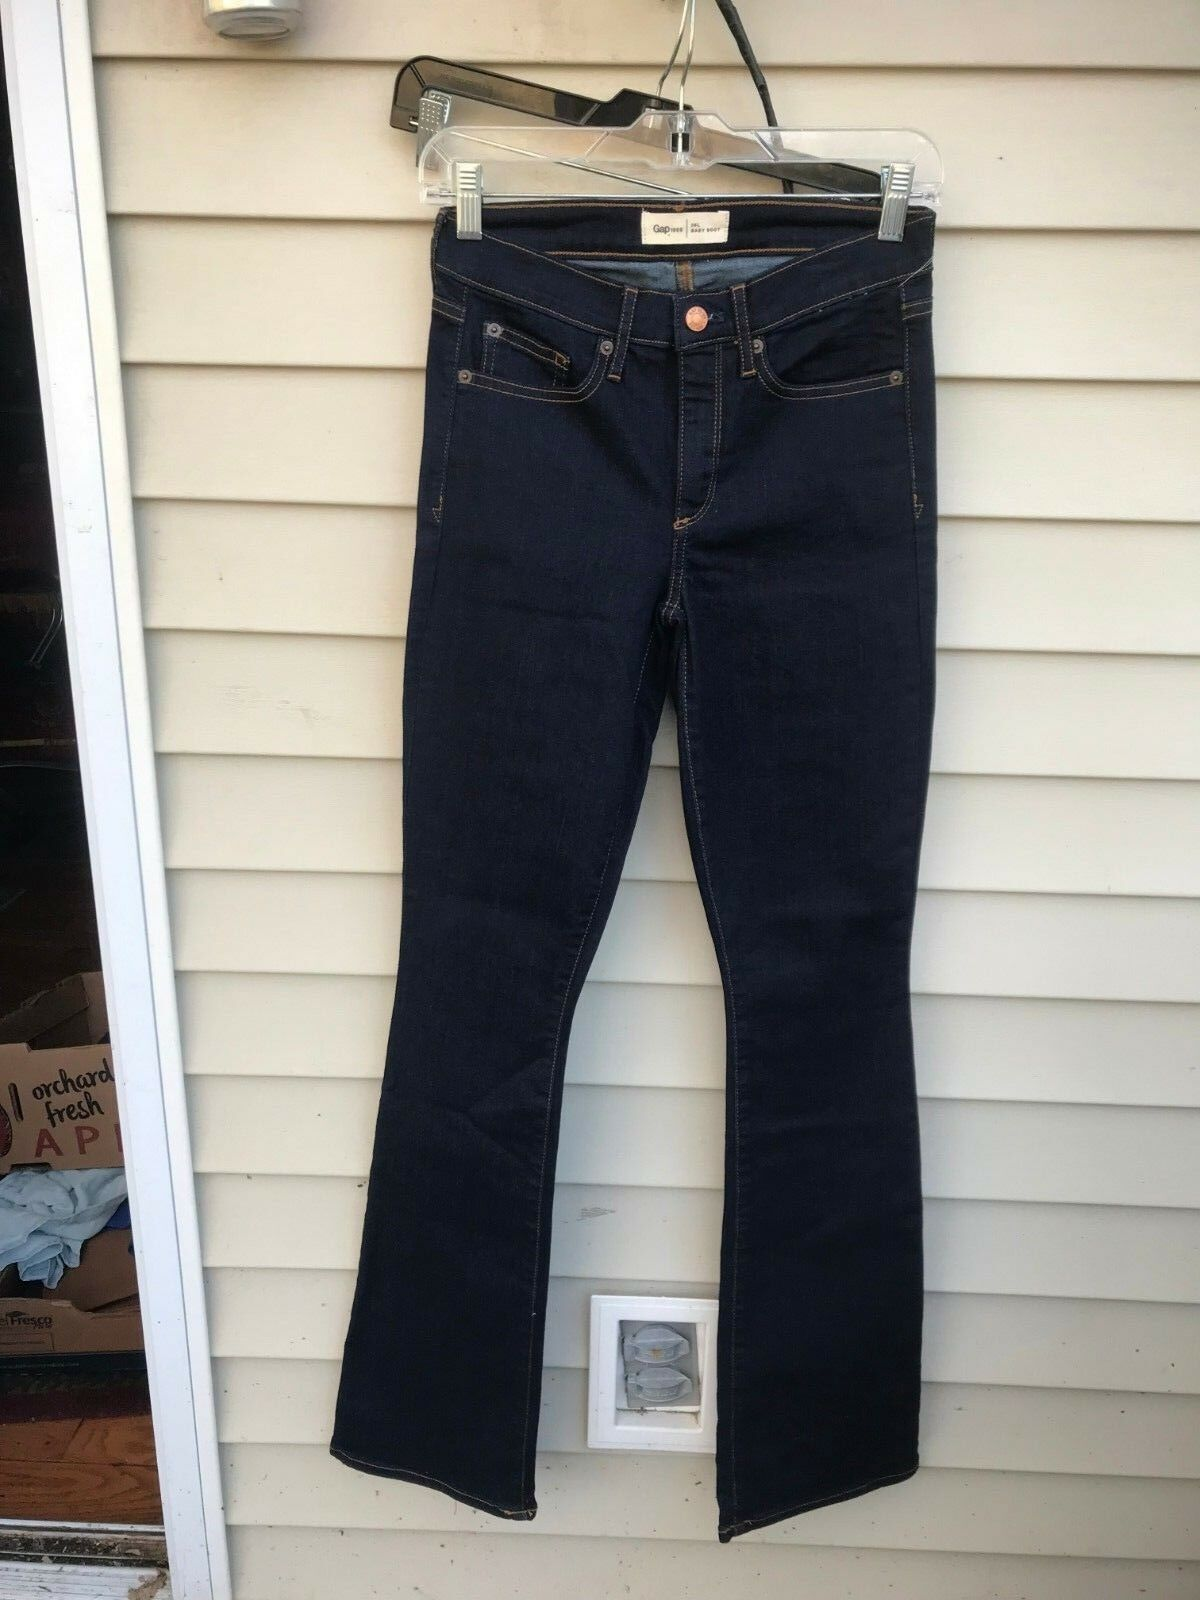 NWT Gap 1969 Baby Boot in Rinse Mid Rise Stretch Denim Jeans SIZE 26L